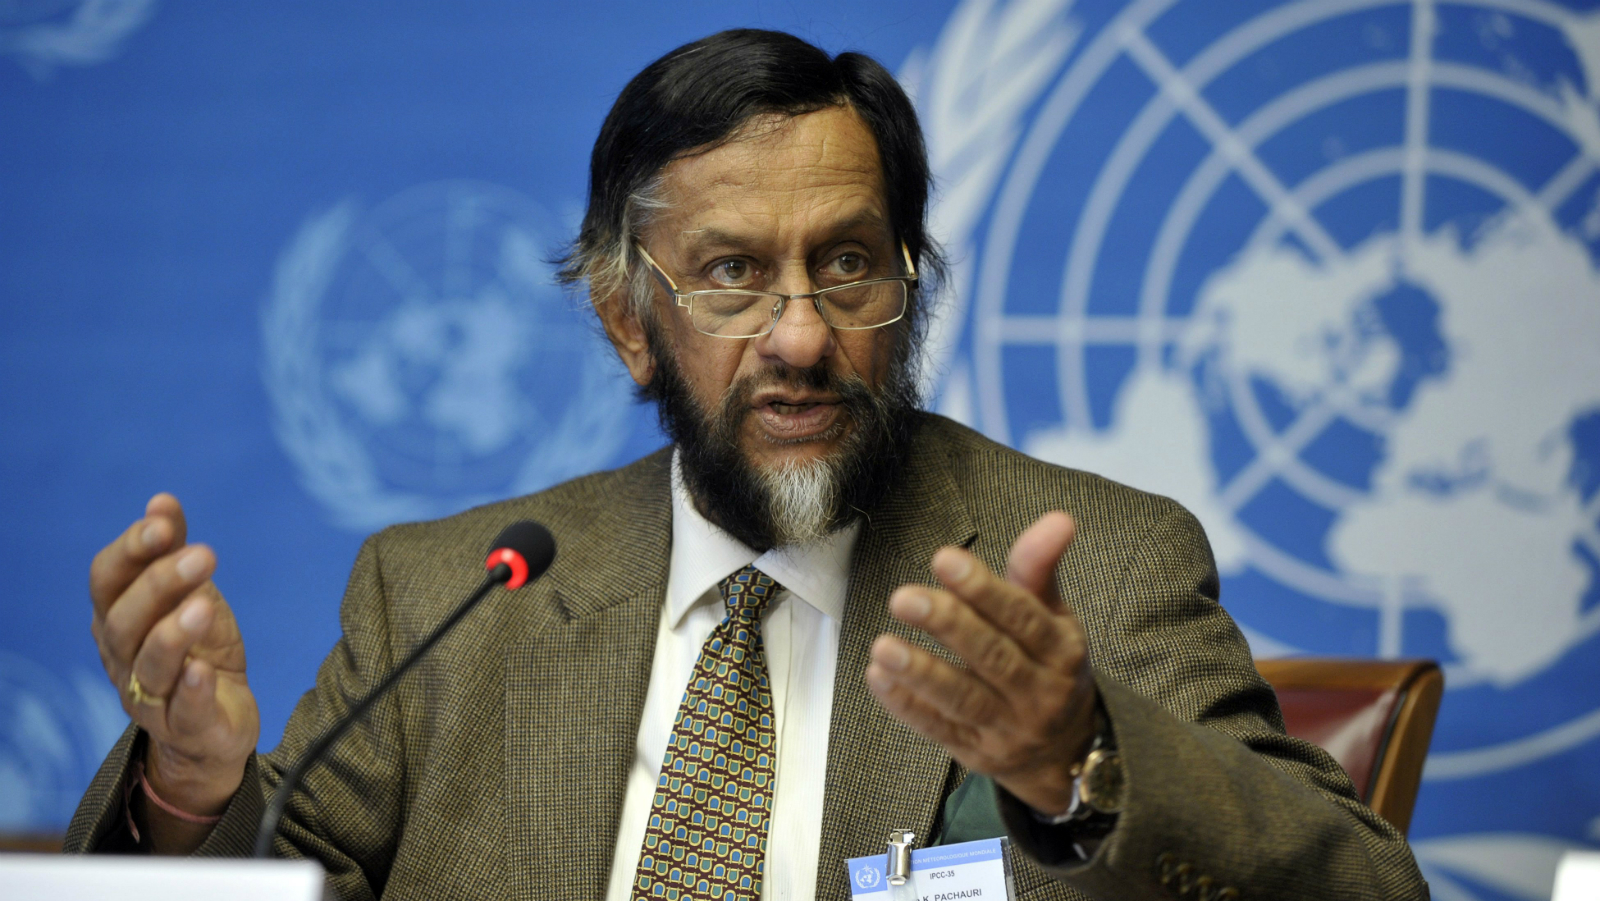 epa04634961 Indian Nobel Peace Price laureate and Chairman of the Intergovernmental Panel on Climate Change (IPCC), Rajendra Kumar Pachauri, speaks during a press briefing about the Task Force on National Greenhouse Gas Inventories at the United Nations in Geneva, Switzerland, 07 June 2012. Pachauri, a top United Nations climate official who was accused of sexually harassing a female colleague stepped down from his position on 24 February 2015. Rajendra Pachauri, 74, chairman of the UN's Intergovernmental Panel on Climate Change, was accused of harassing a 29-year-old researcher at his Delhi-based think tank. The IPCC made the announcement at a high-level meeting in the Kenyan capital Nairobi and said the panel's vice-chair, Ismail El Gizouli, was designated as acting chief. EPA/MARTIAL TREZZINI